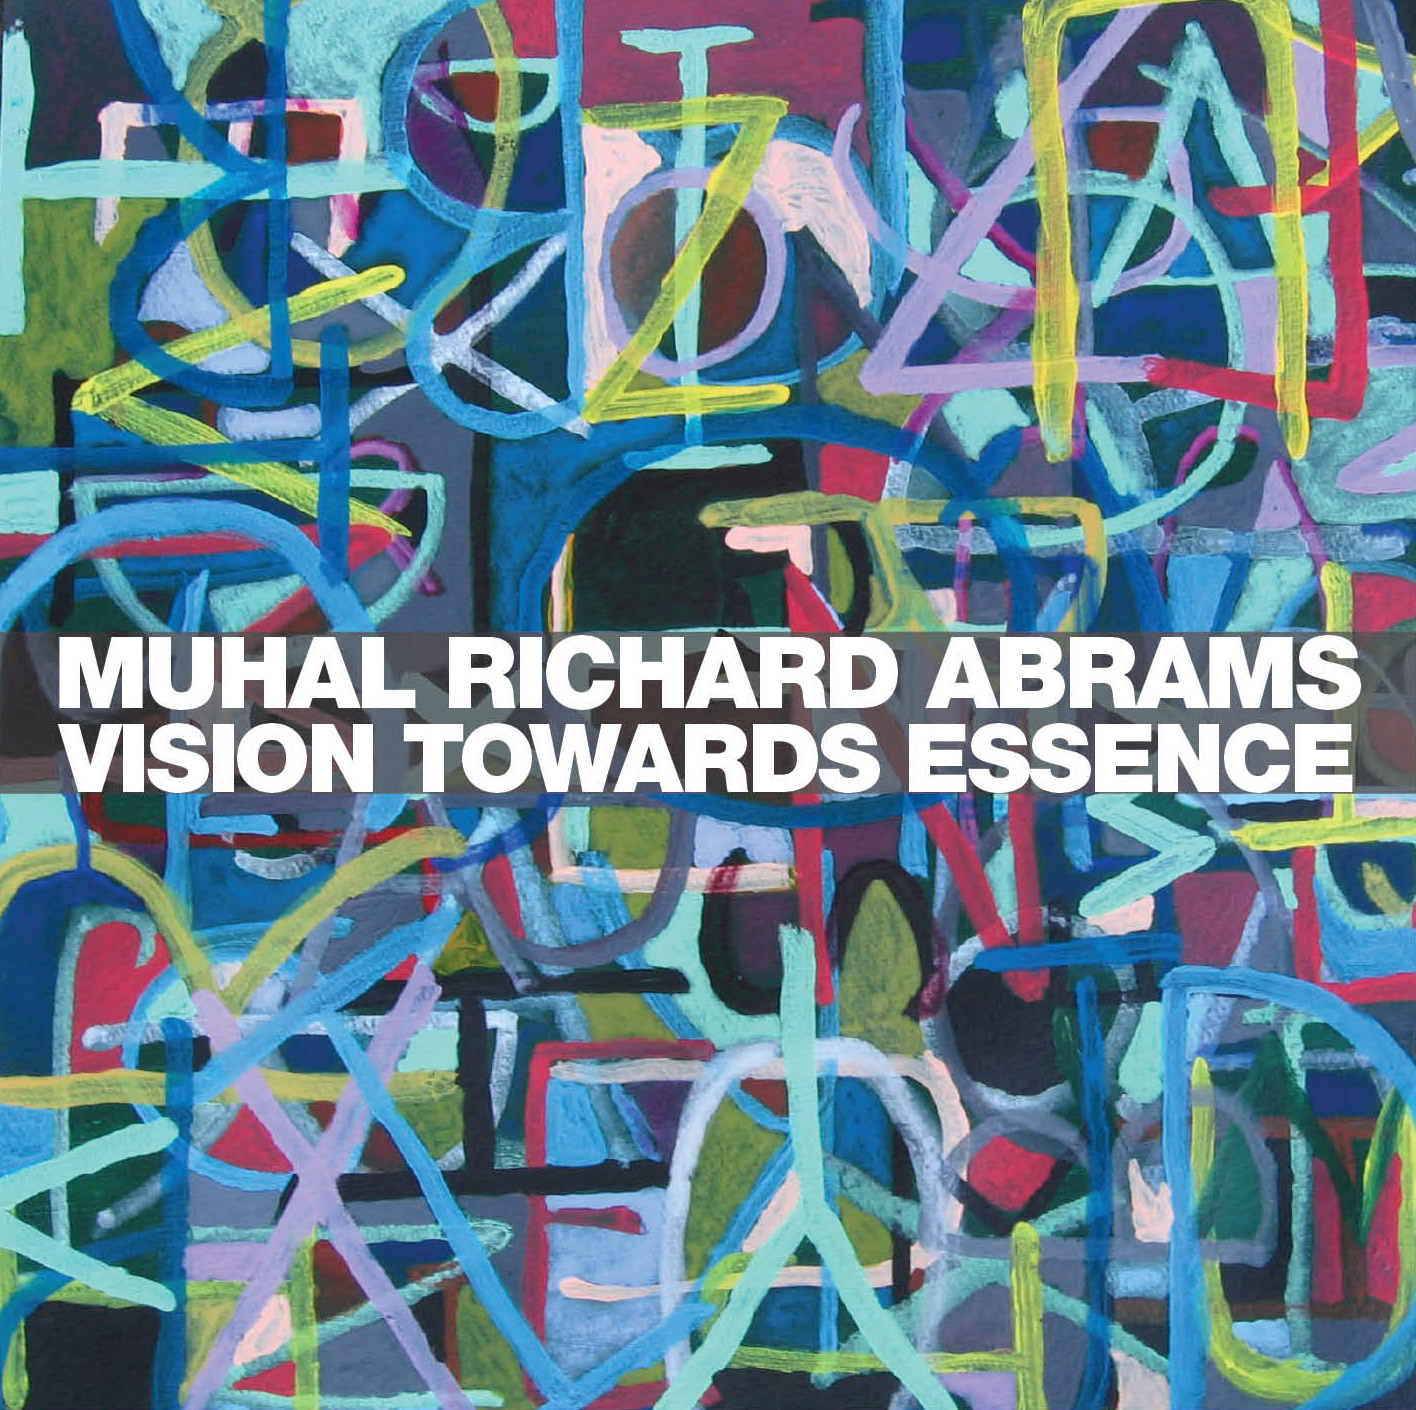 Vision Towards Essence - Muhal Richard Abrams